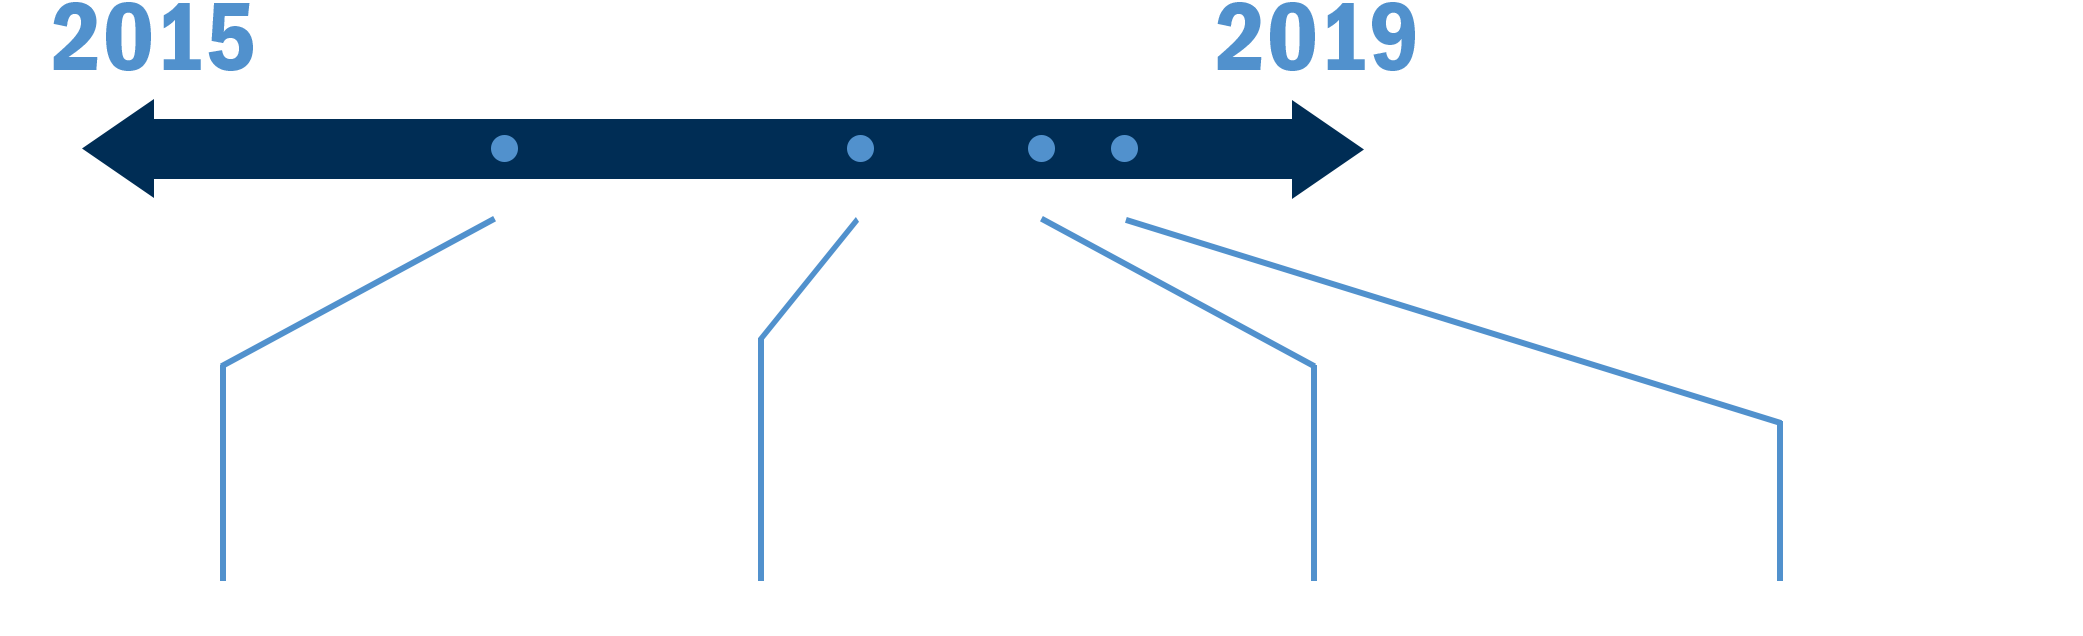 A timeline arrow starting at 2015 and going to 2019